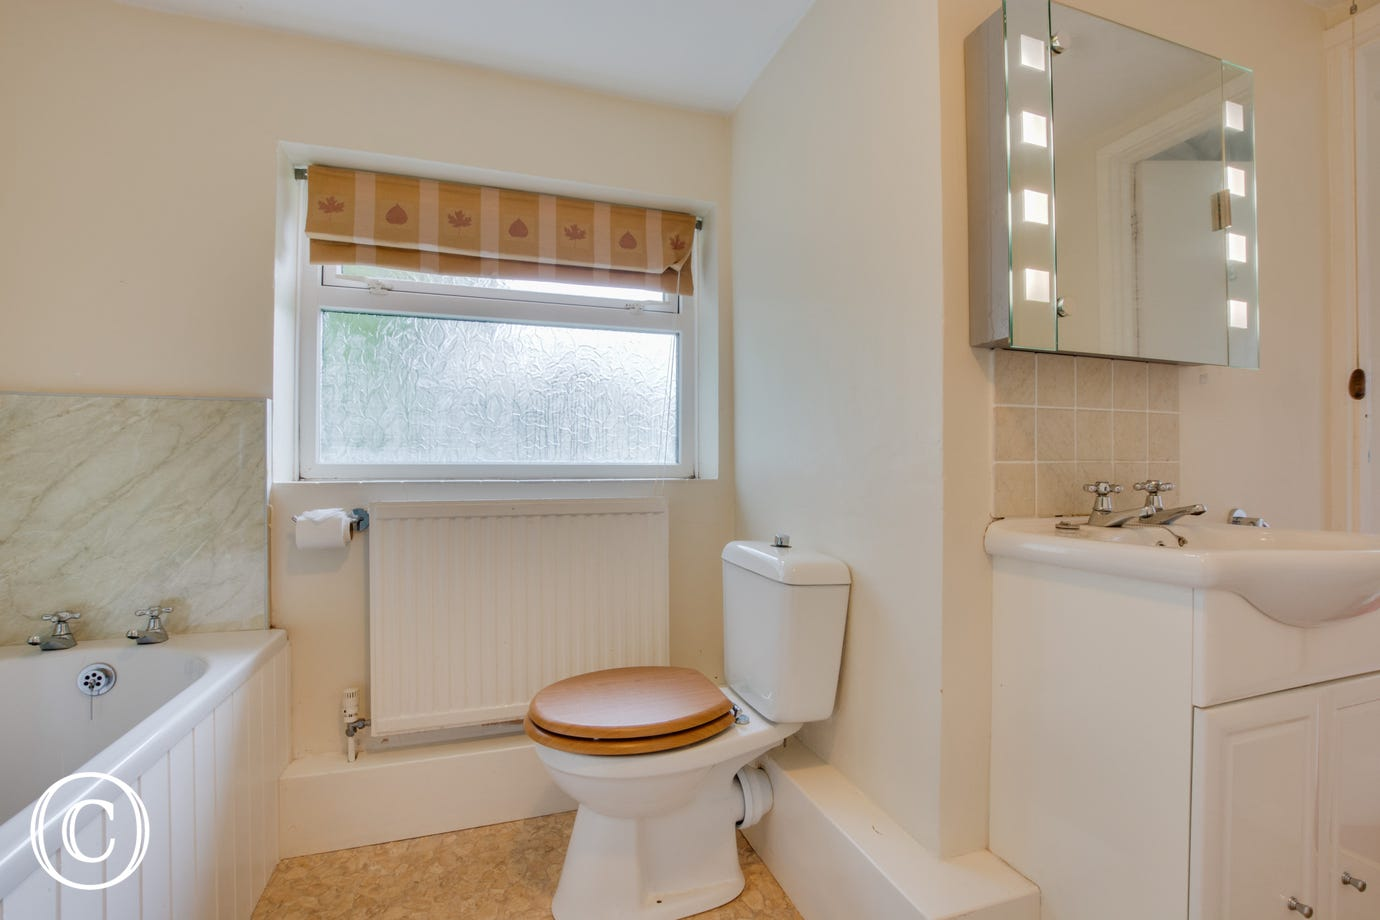 Self catering accommodation with family bathroom.